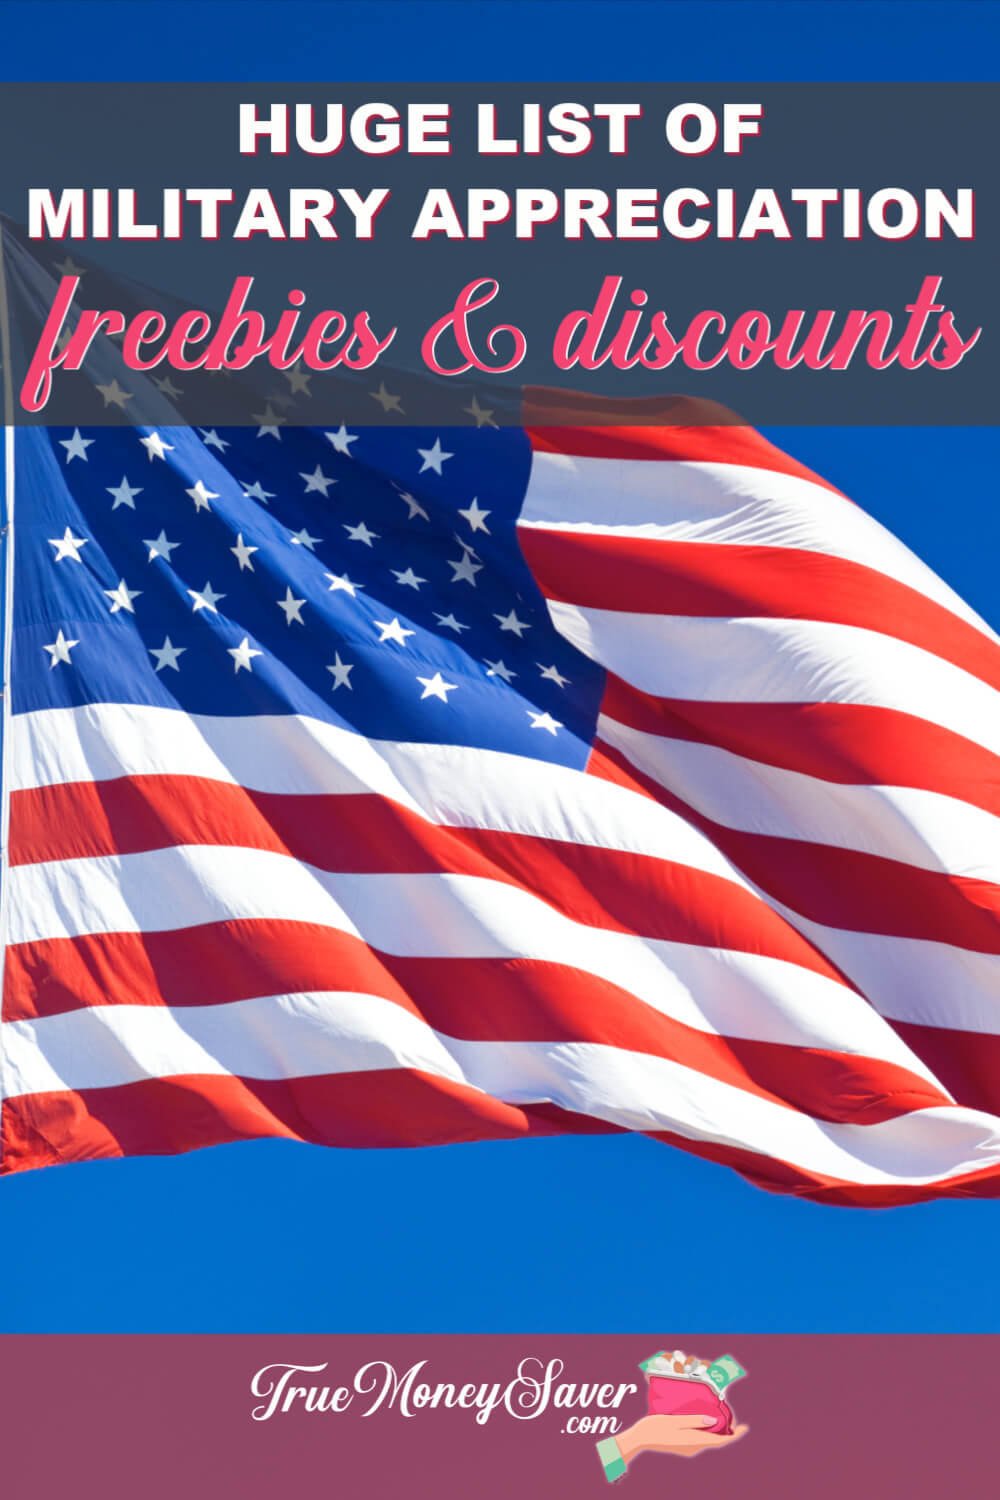 The Most Outstanding 45 Military Appreciation FREEbies & Discounts (Waves Of Honor Details)